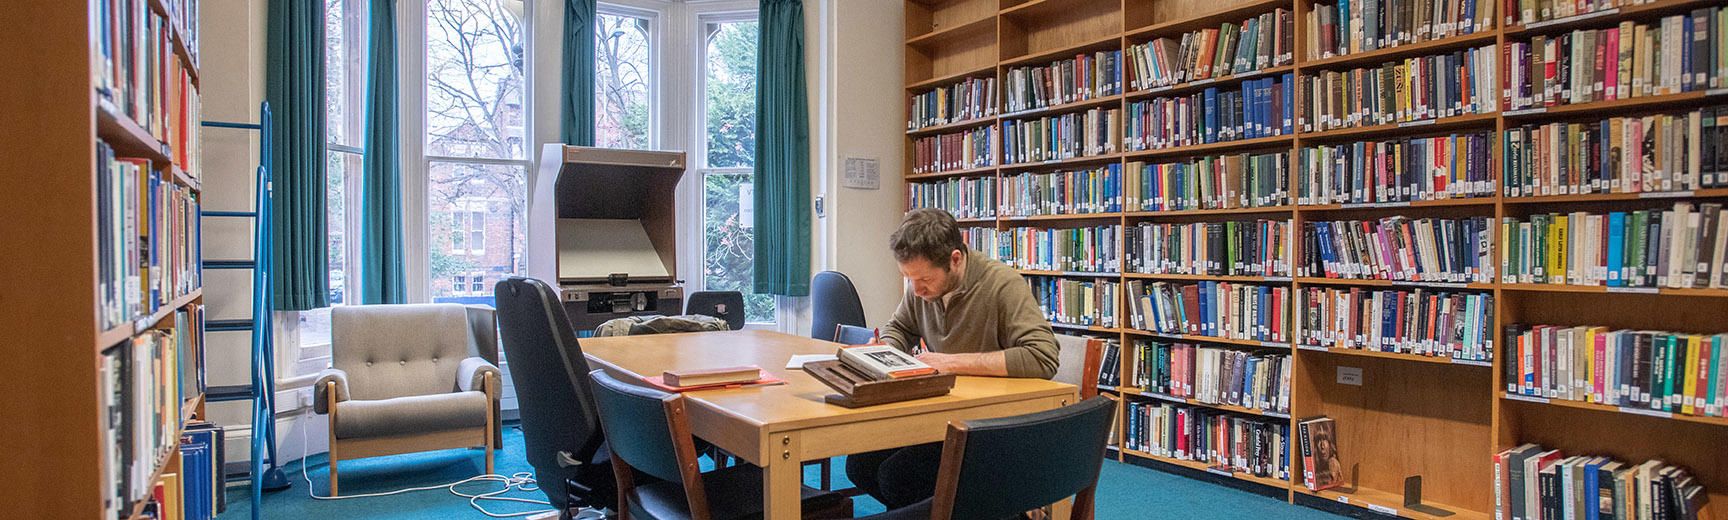 A student working at a desk in the middle of a room surrounded by bookshelves